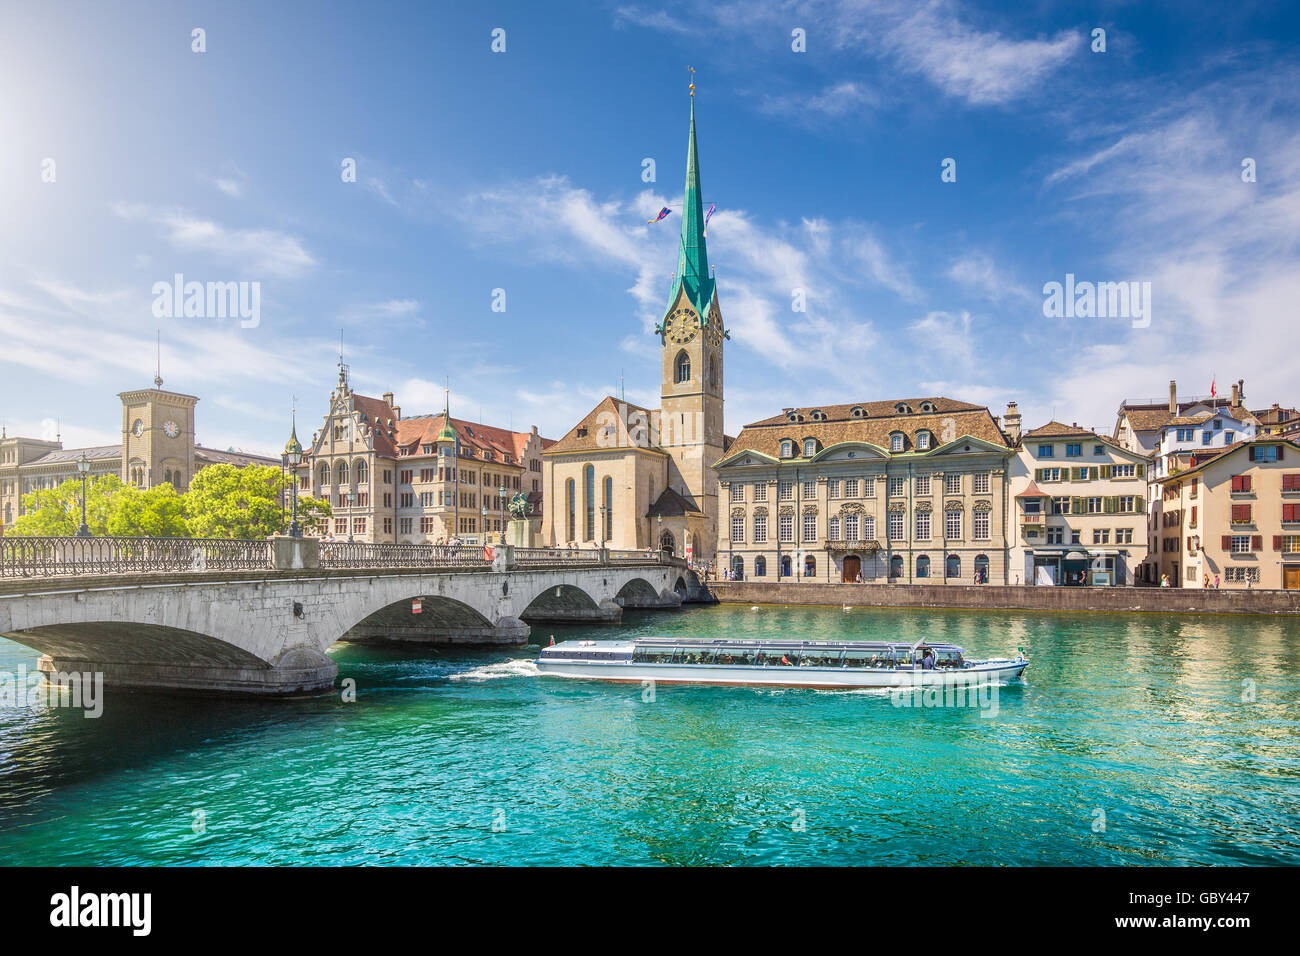 Historic city center of Zurich with famous Fraumunster Church and excursion boat on river Limmat, Canton of Zurich, - Stock Image